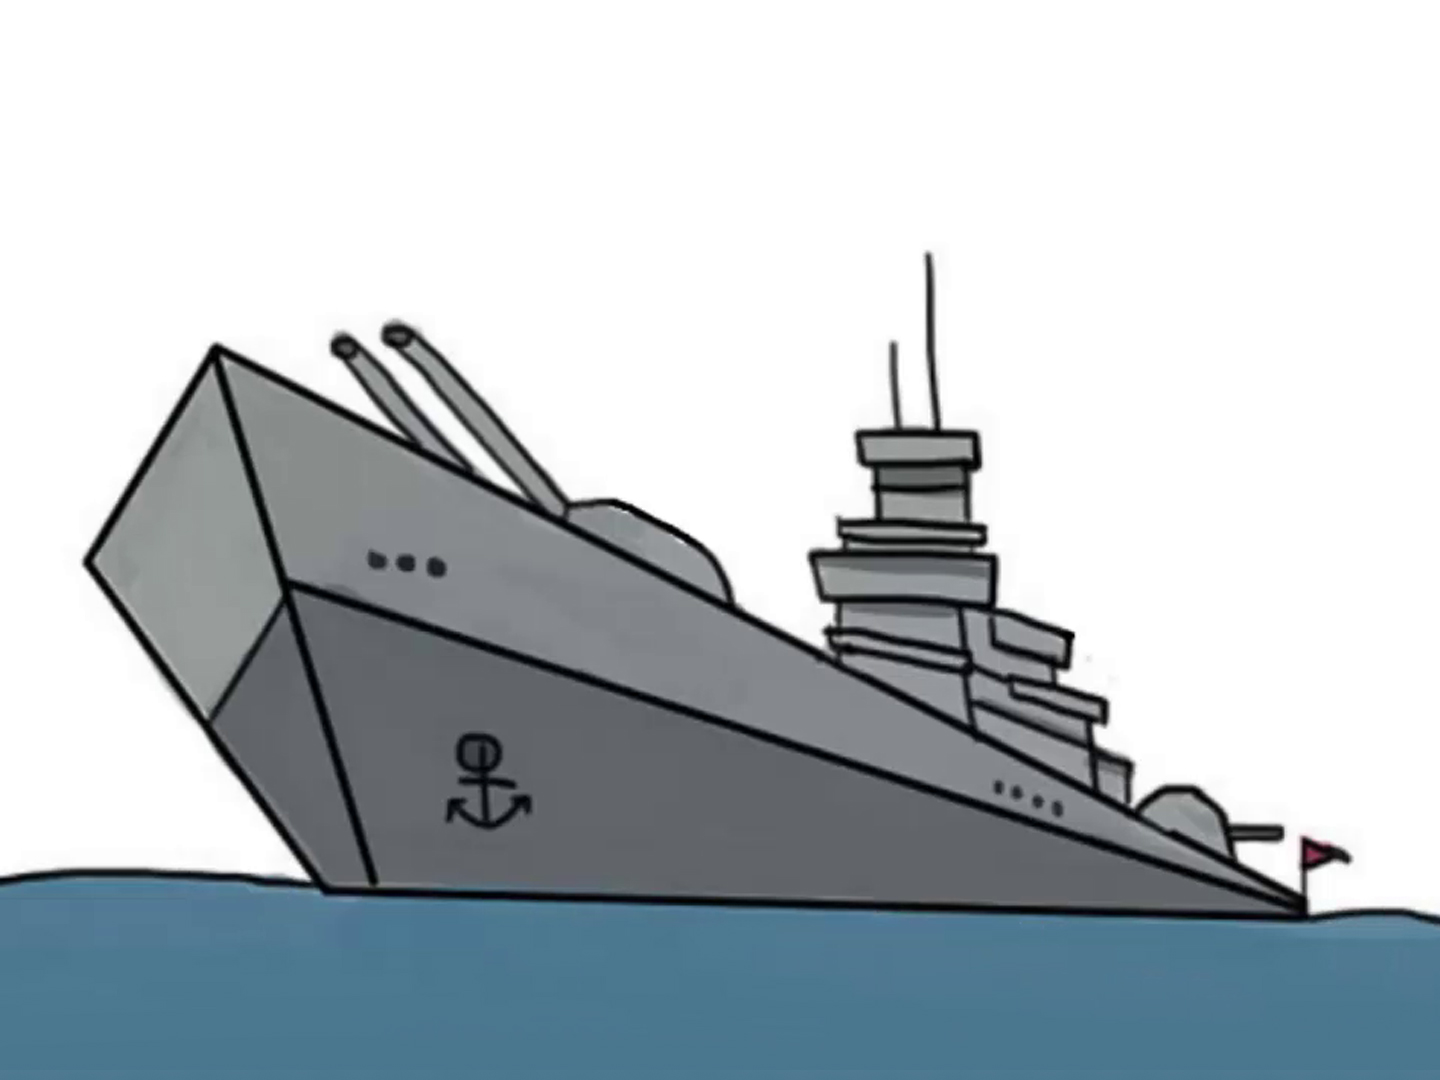 Battleship Clipart Broken Ship Battleship Broken Ship